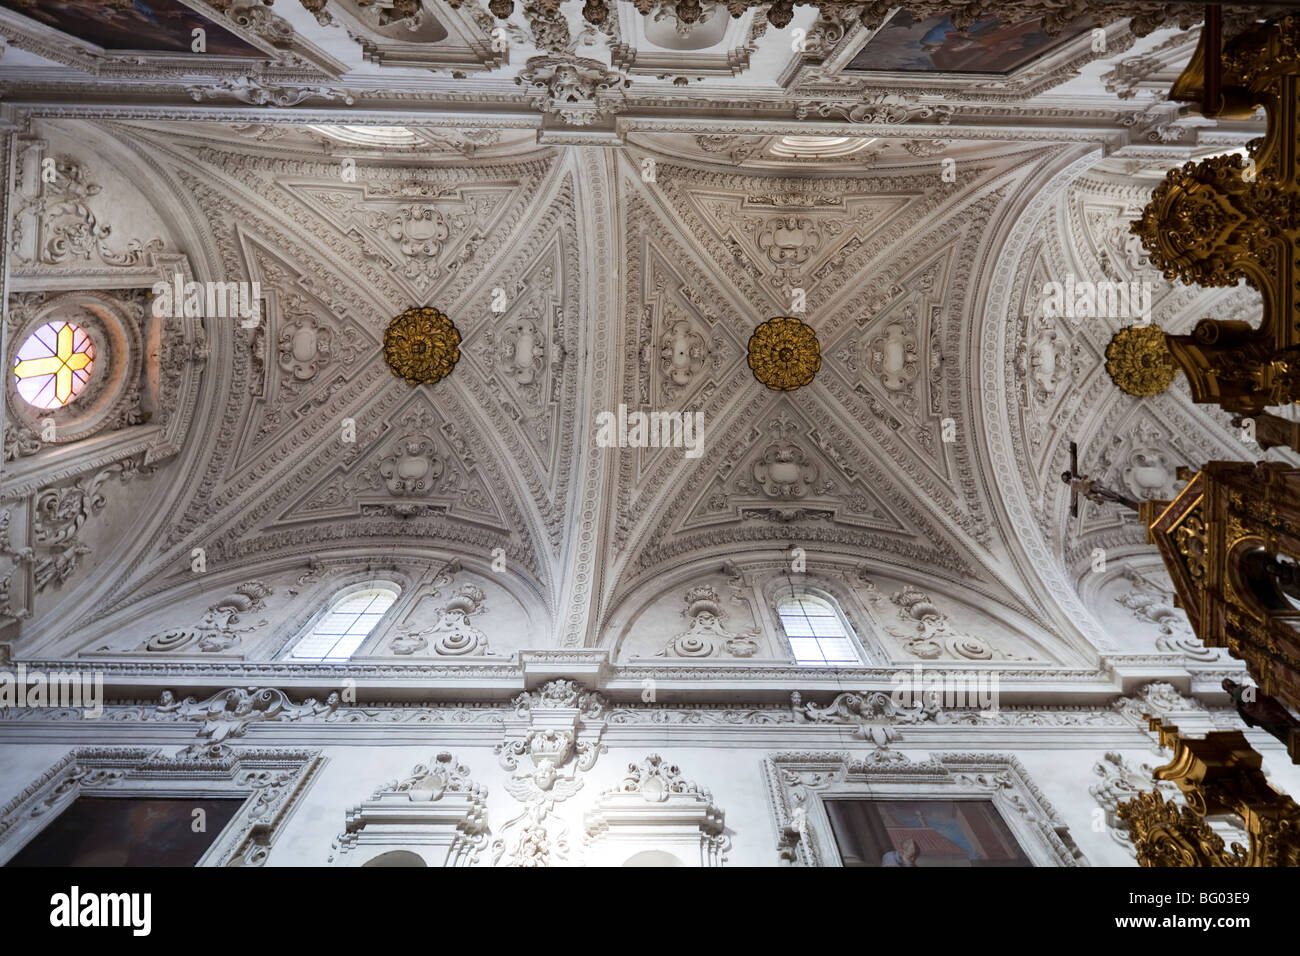 vaulting of nave of church, Cartuja de Granada, Granada Charterhouse, Granada, Andalusia, Spain - Stock Image